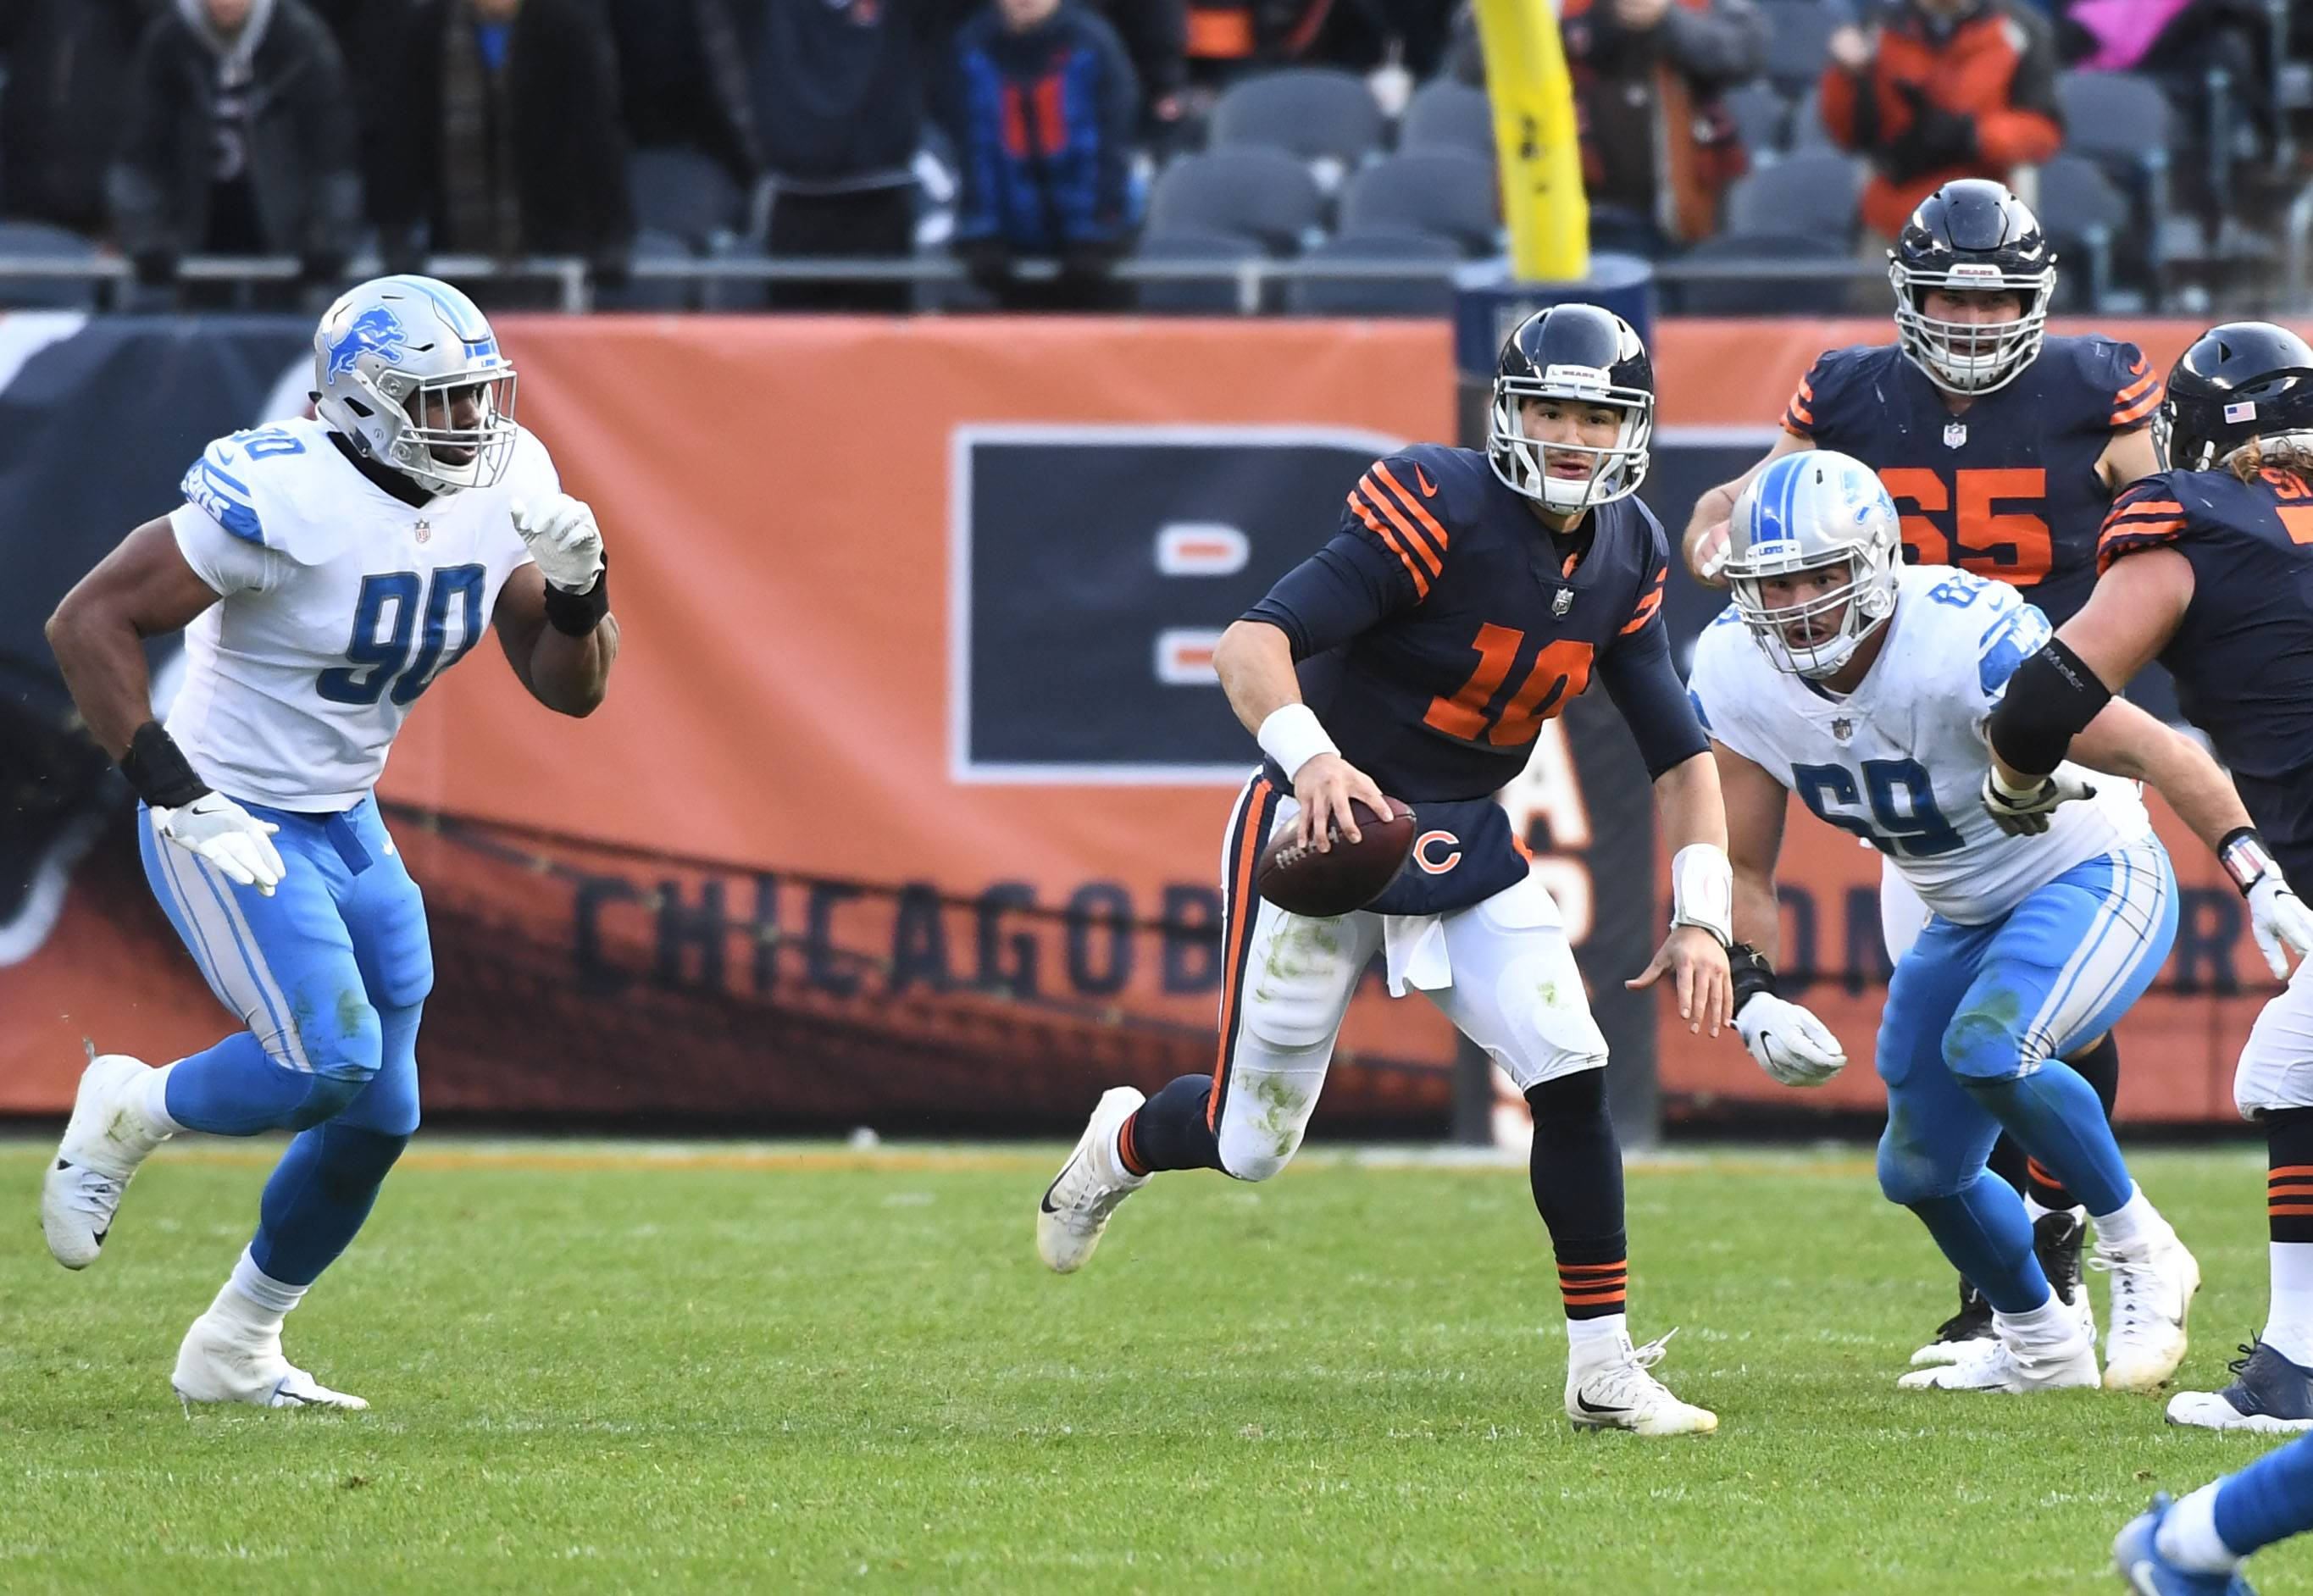 Bears' Trubisky took great strides in loss to Lions